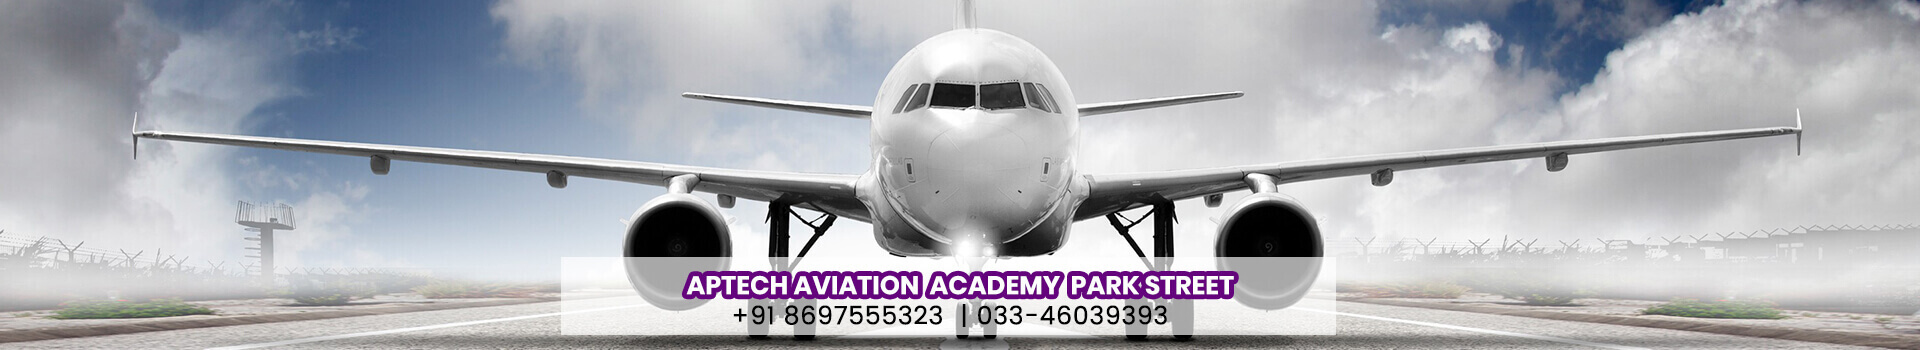 contacts for aviation institute in kolkata